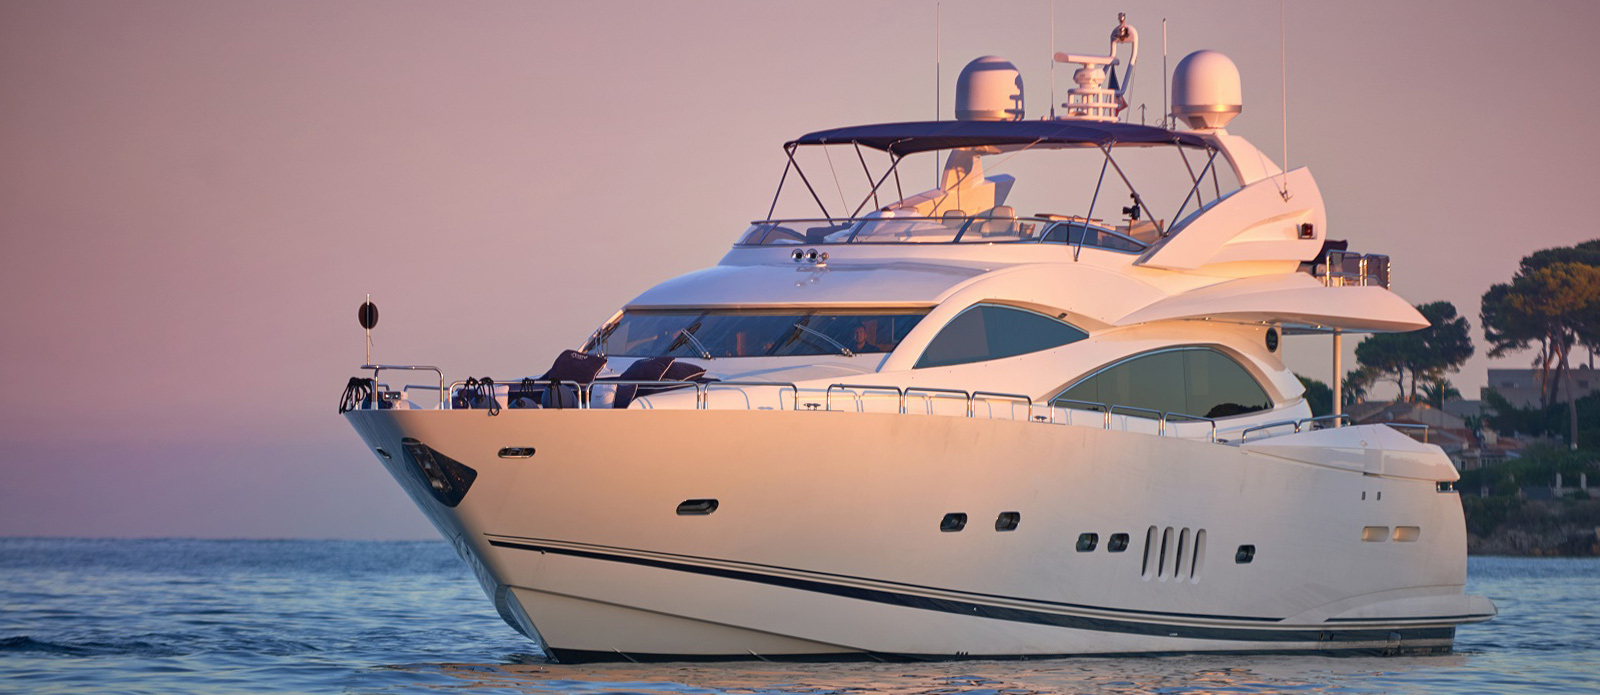 Sunseeker 94 Yacht - Pearl of London - Side Profile